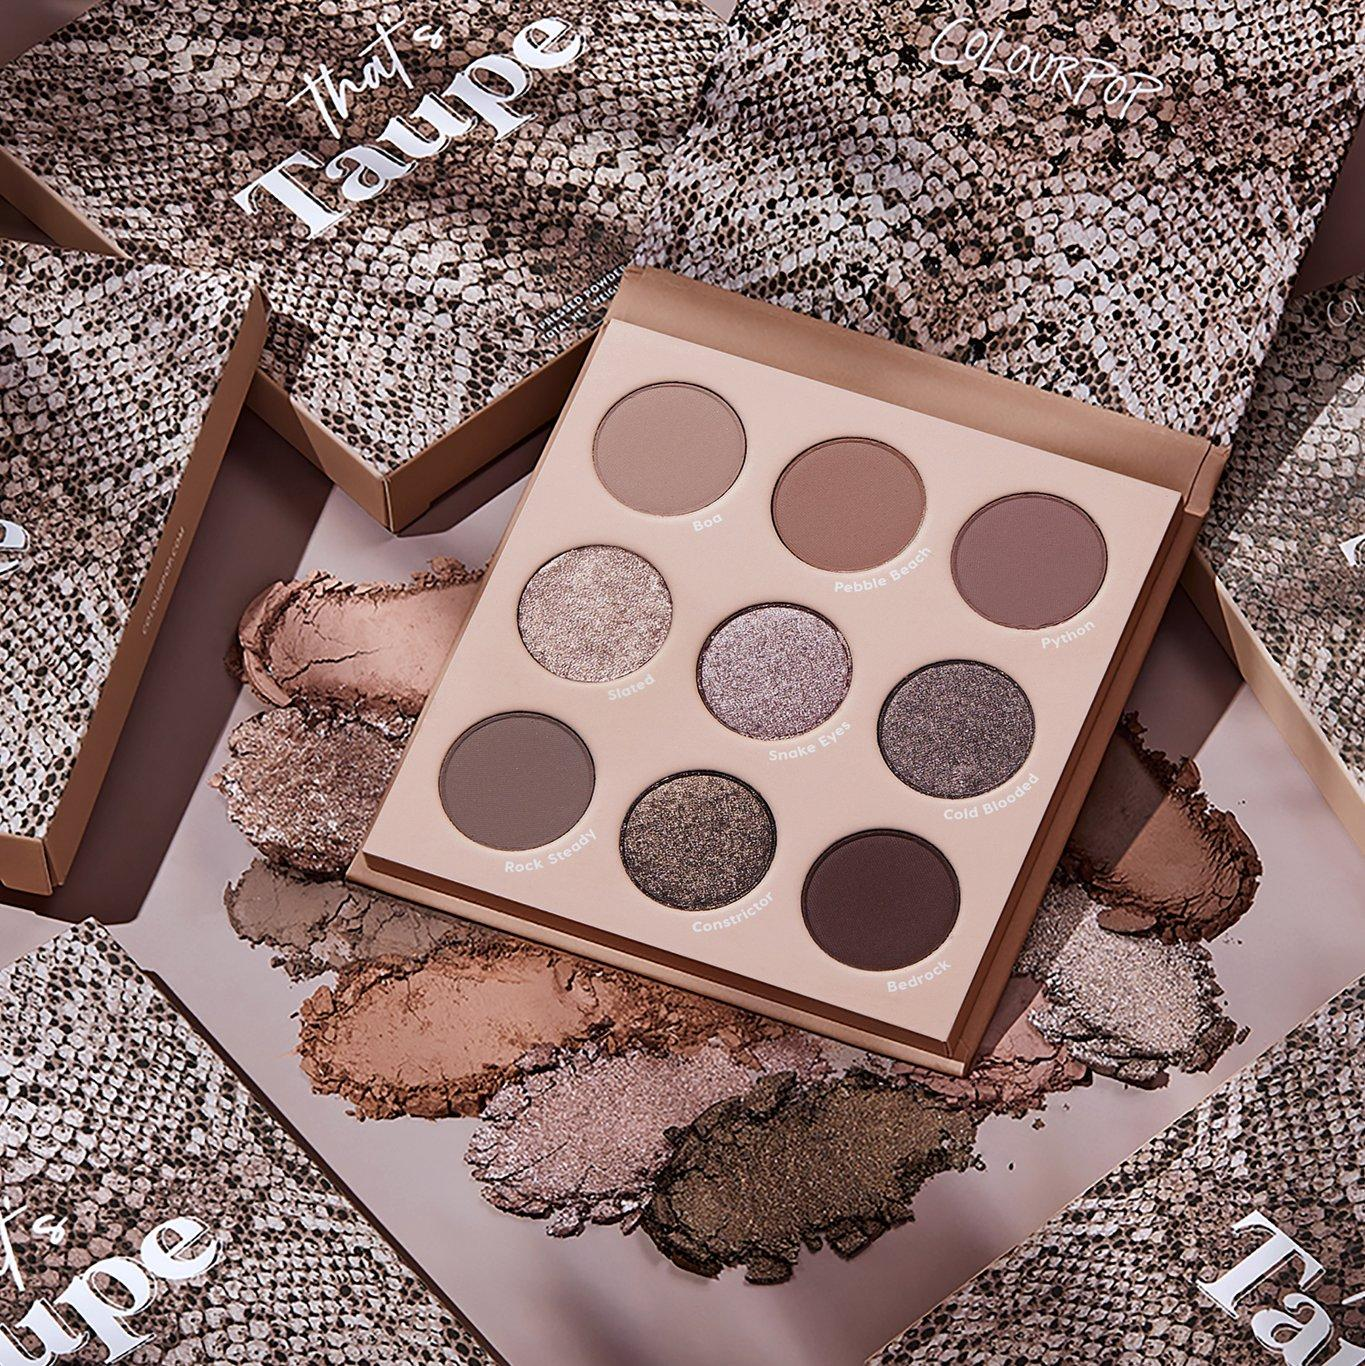 Colourpop That's Taupe Collection That's Taupe Eyshadow Palette Promo